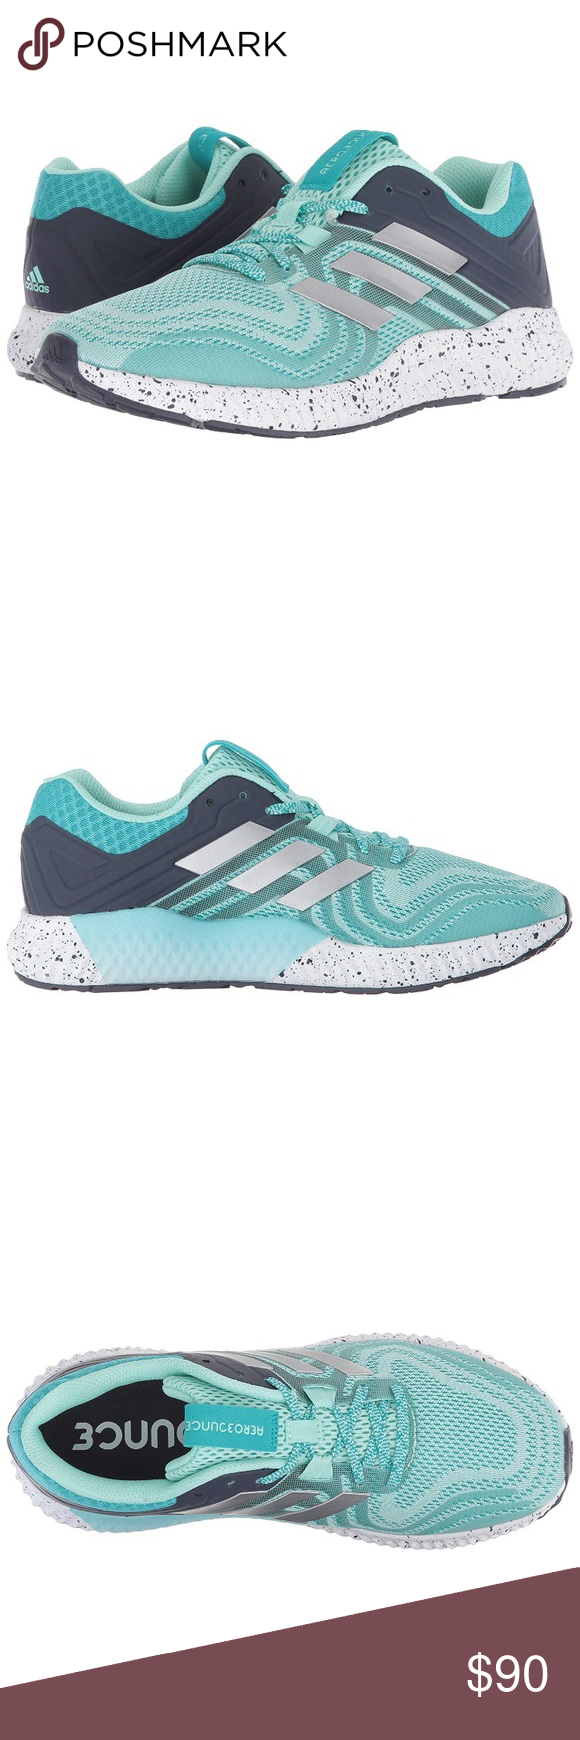 62df15407d7d99 ADIDAS AEROBOUNCE ST 2 women 8.5 women s running shoes. They balance  comfort and stability in